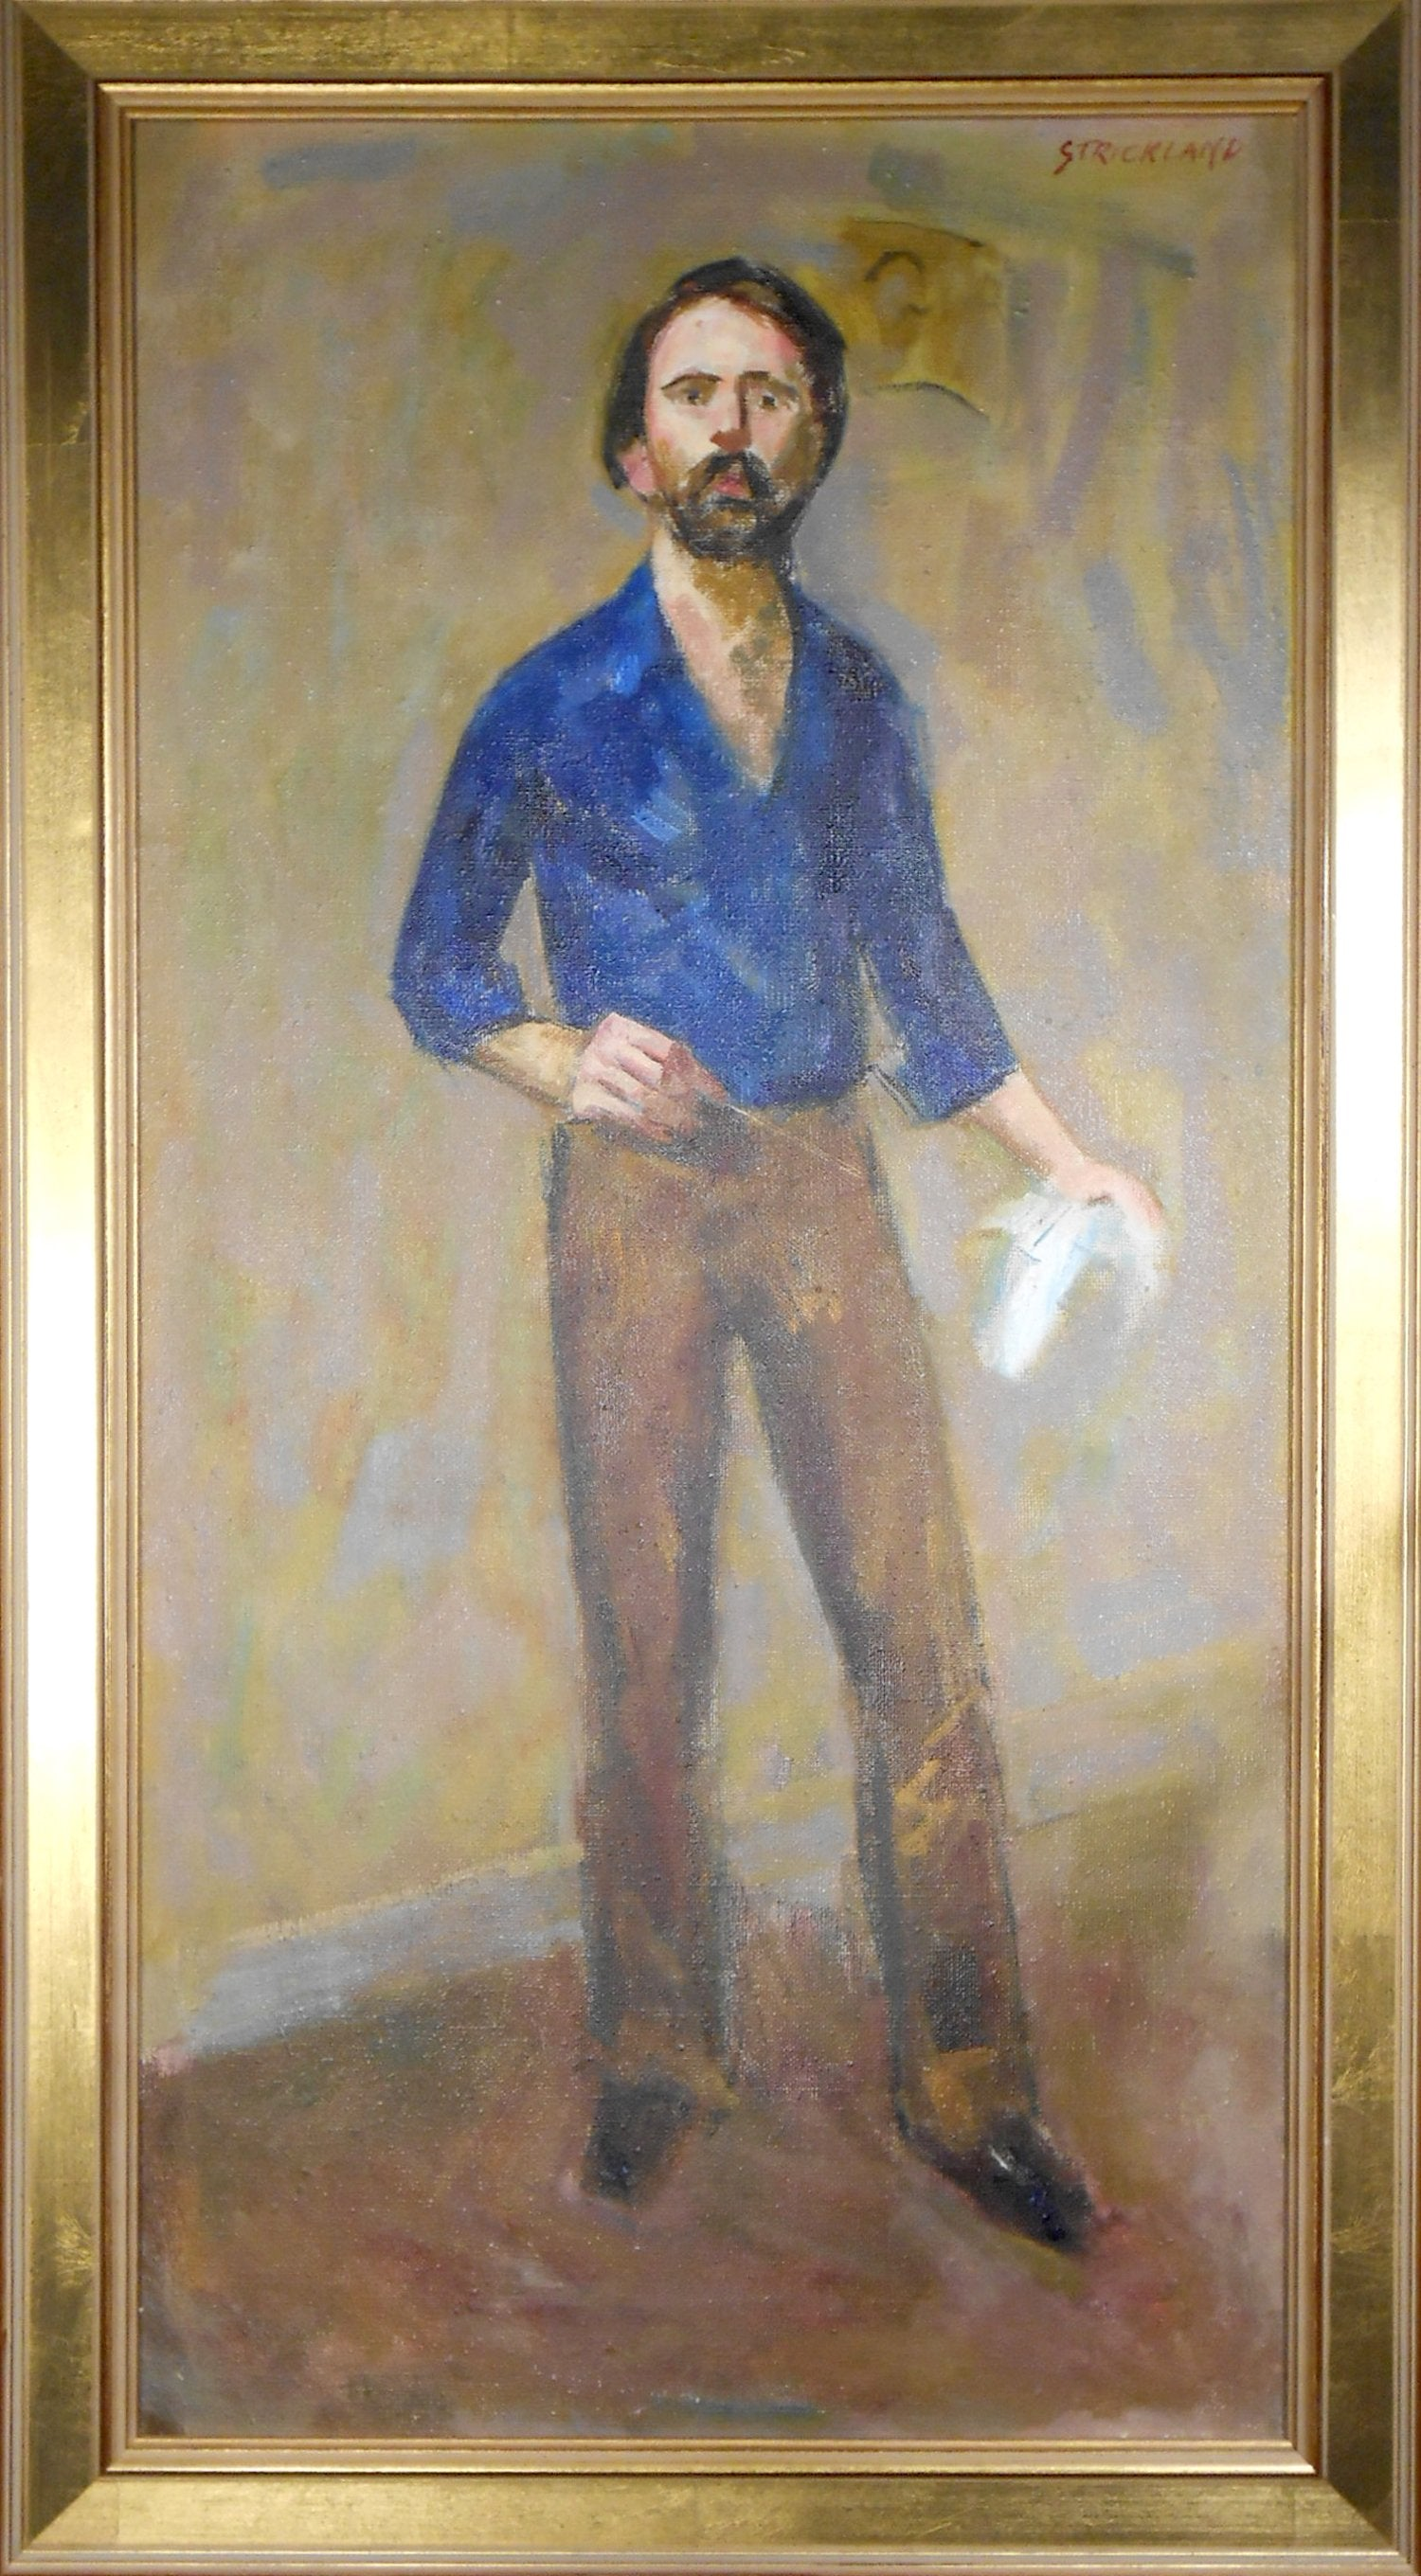 Thomas Strickland, Self Portrait (Standing with Paintbrush) Oil - RoGallery